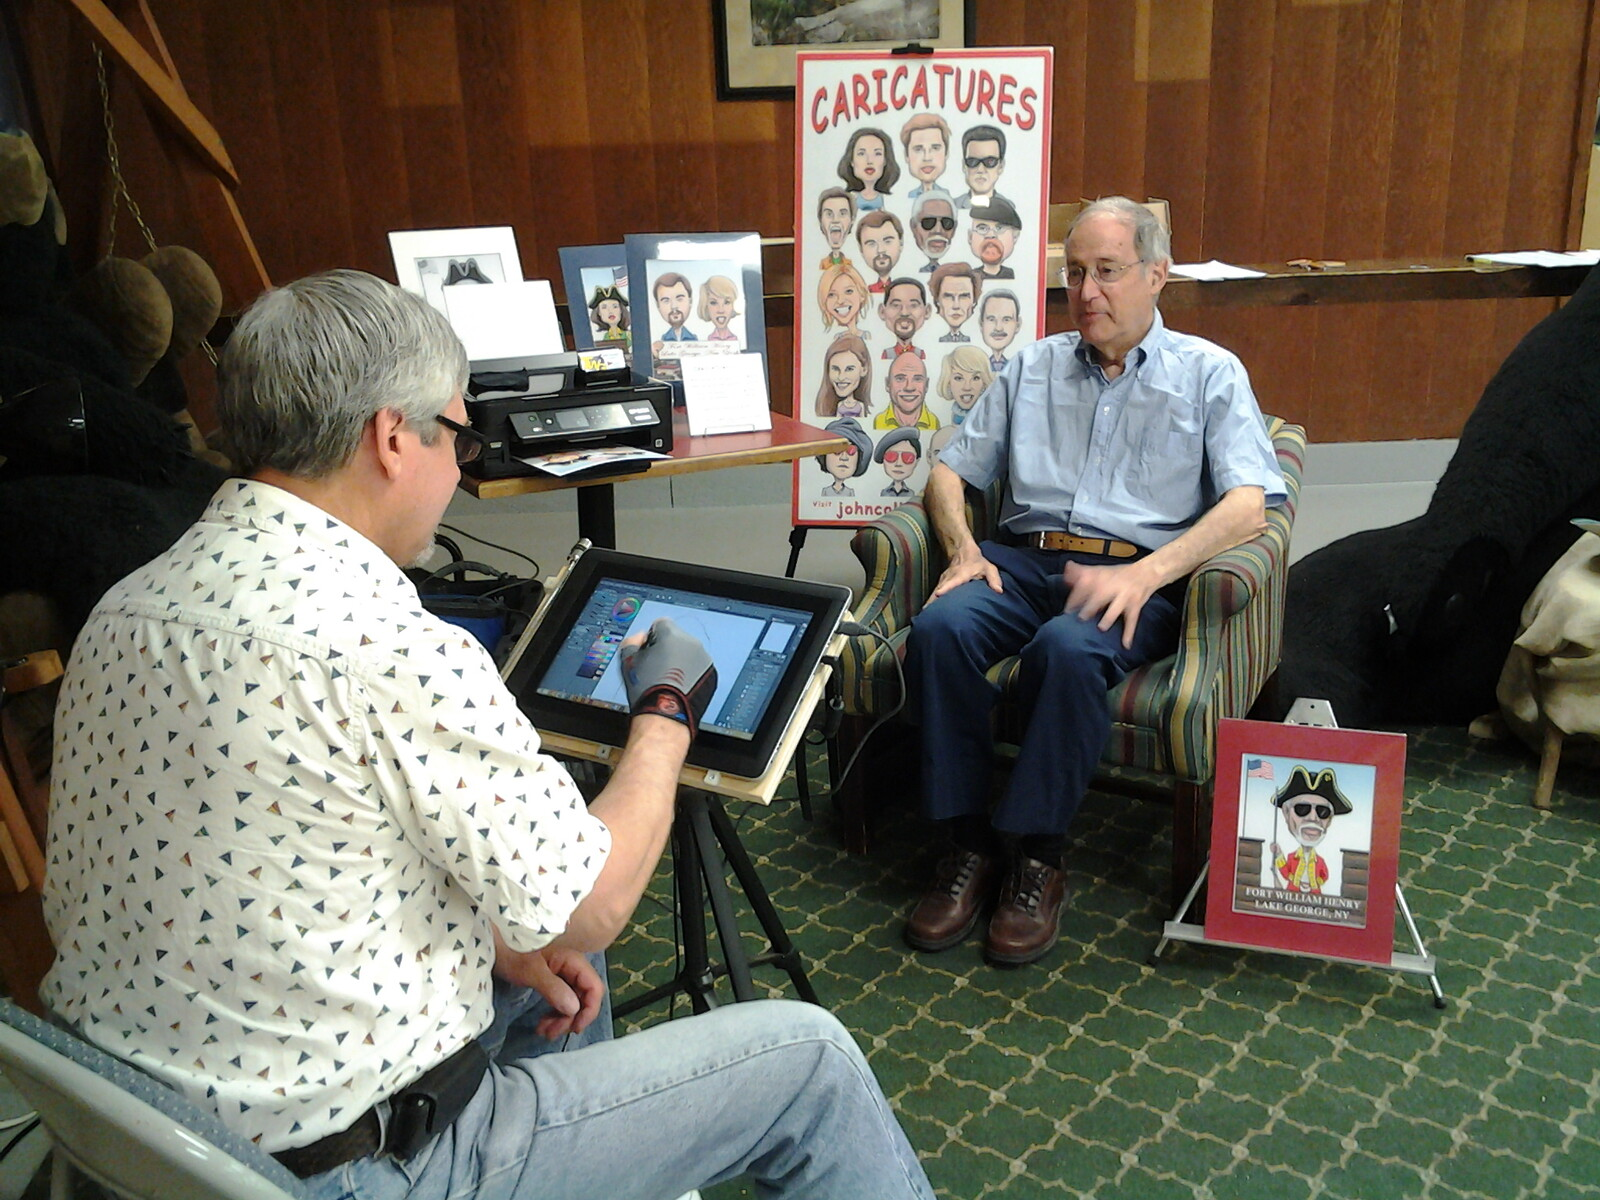 Illustrating Caricatures